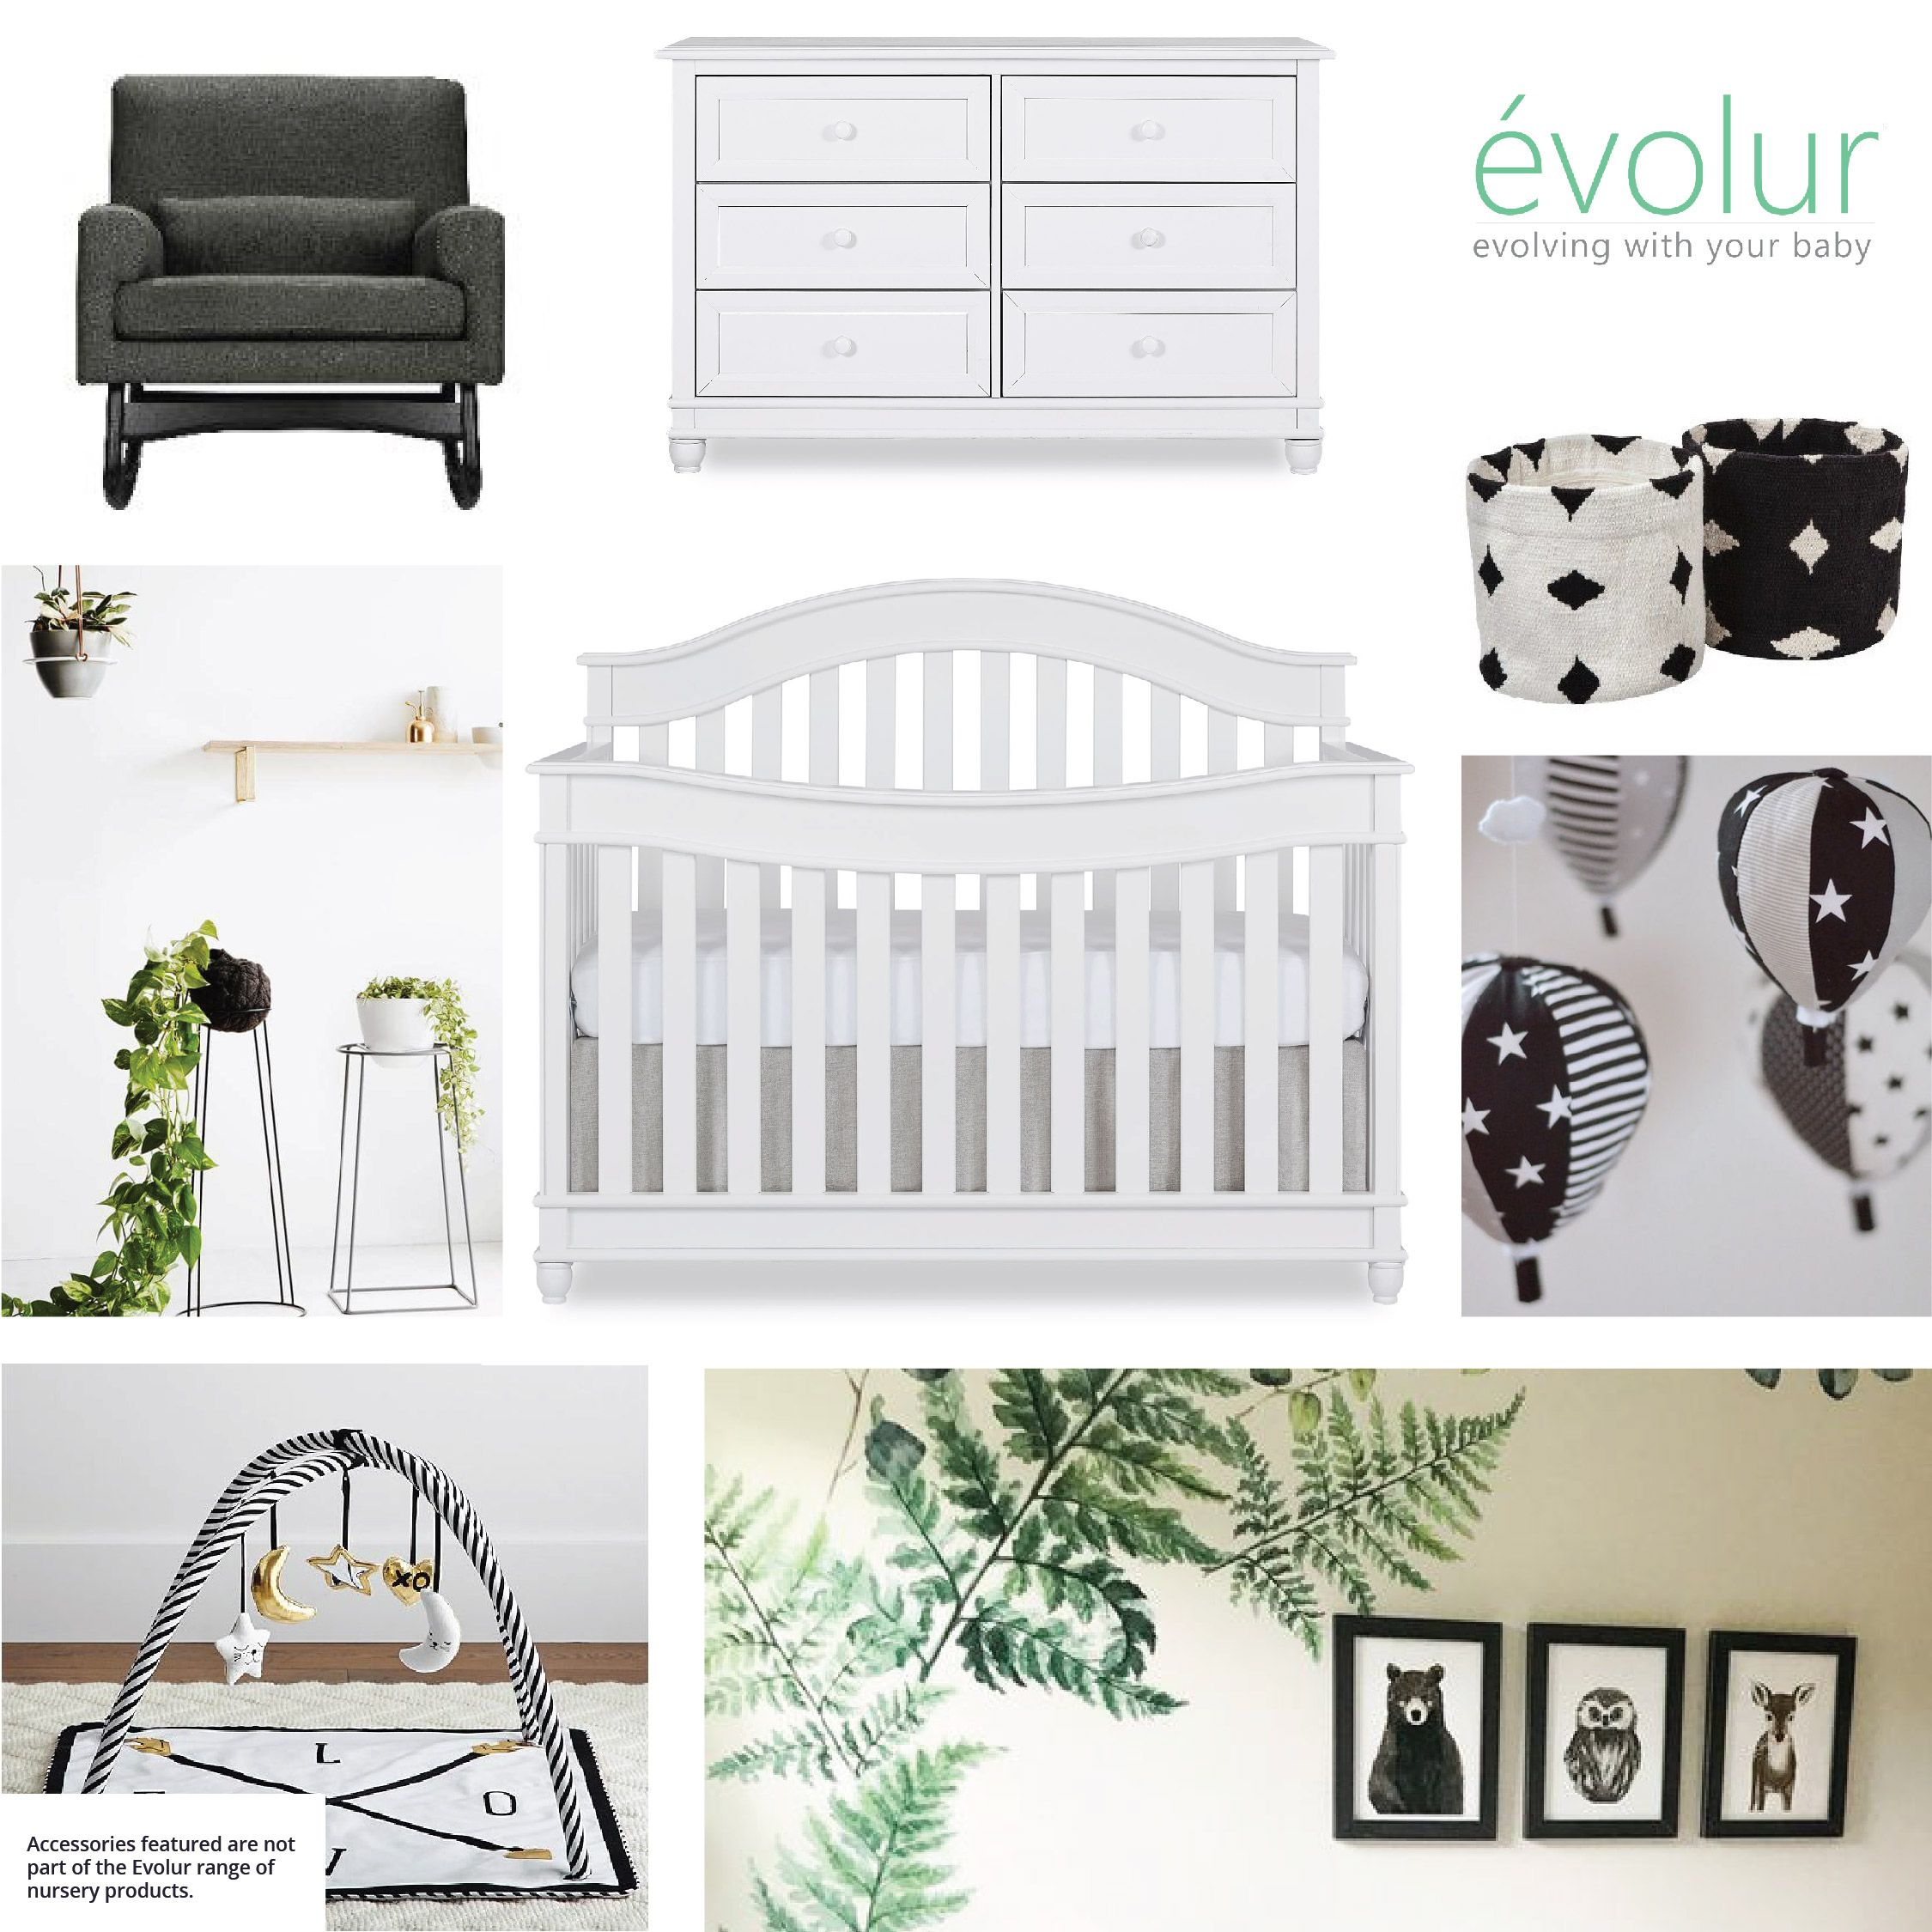 How About This Ultra Modern Nursery In Black And White With